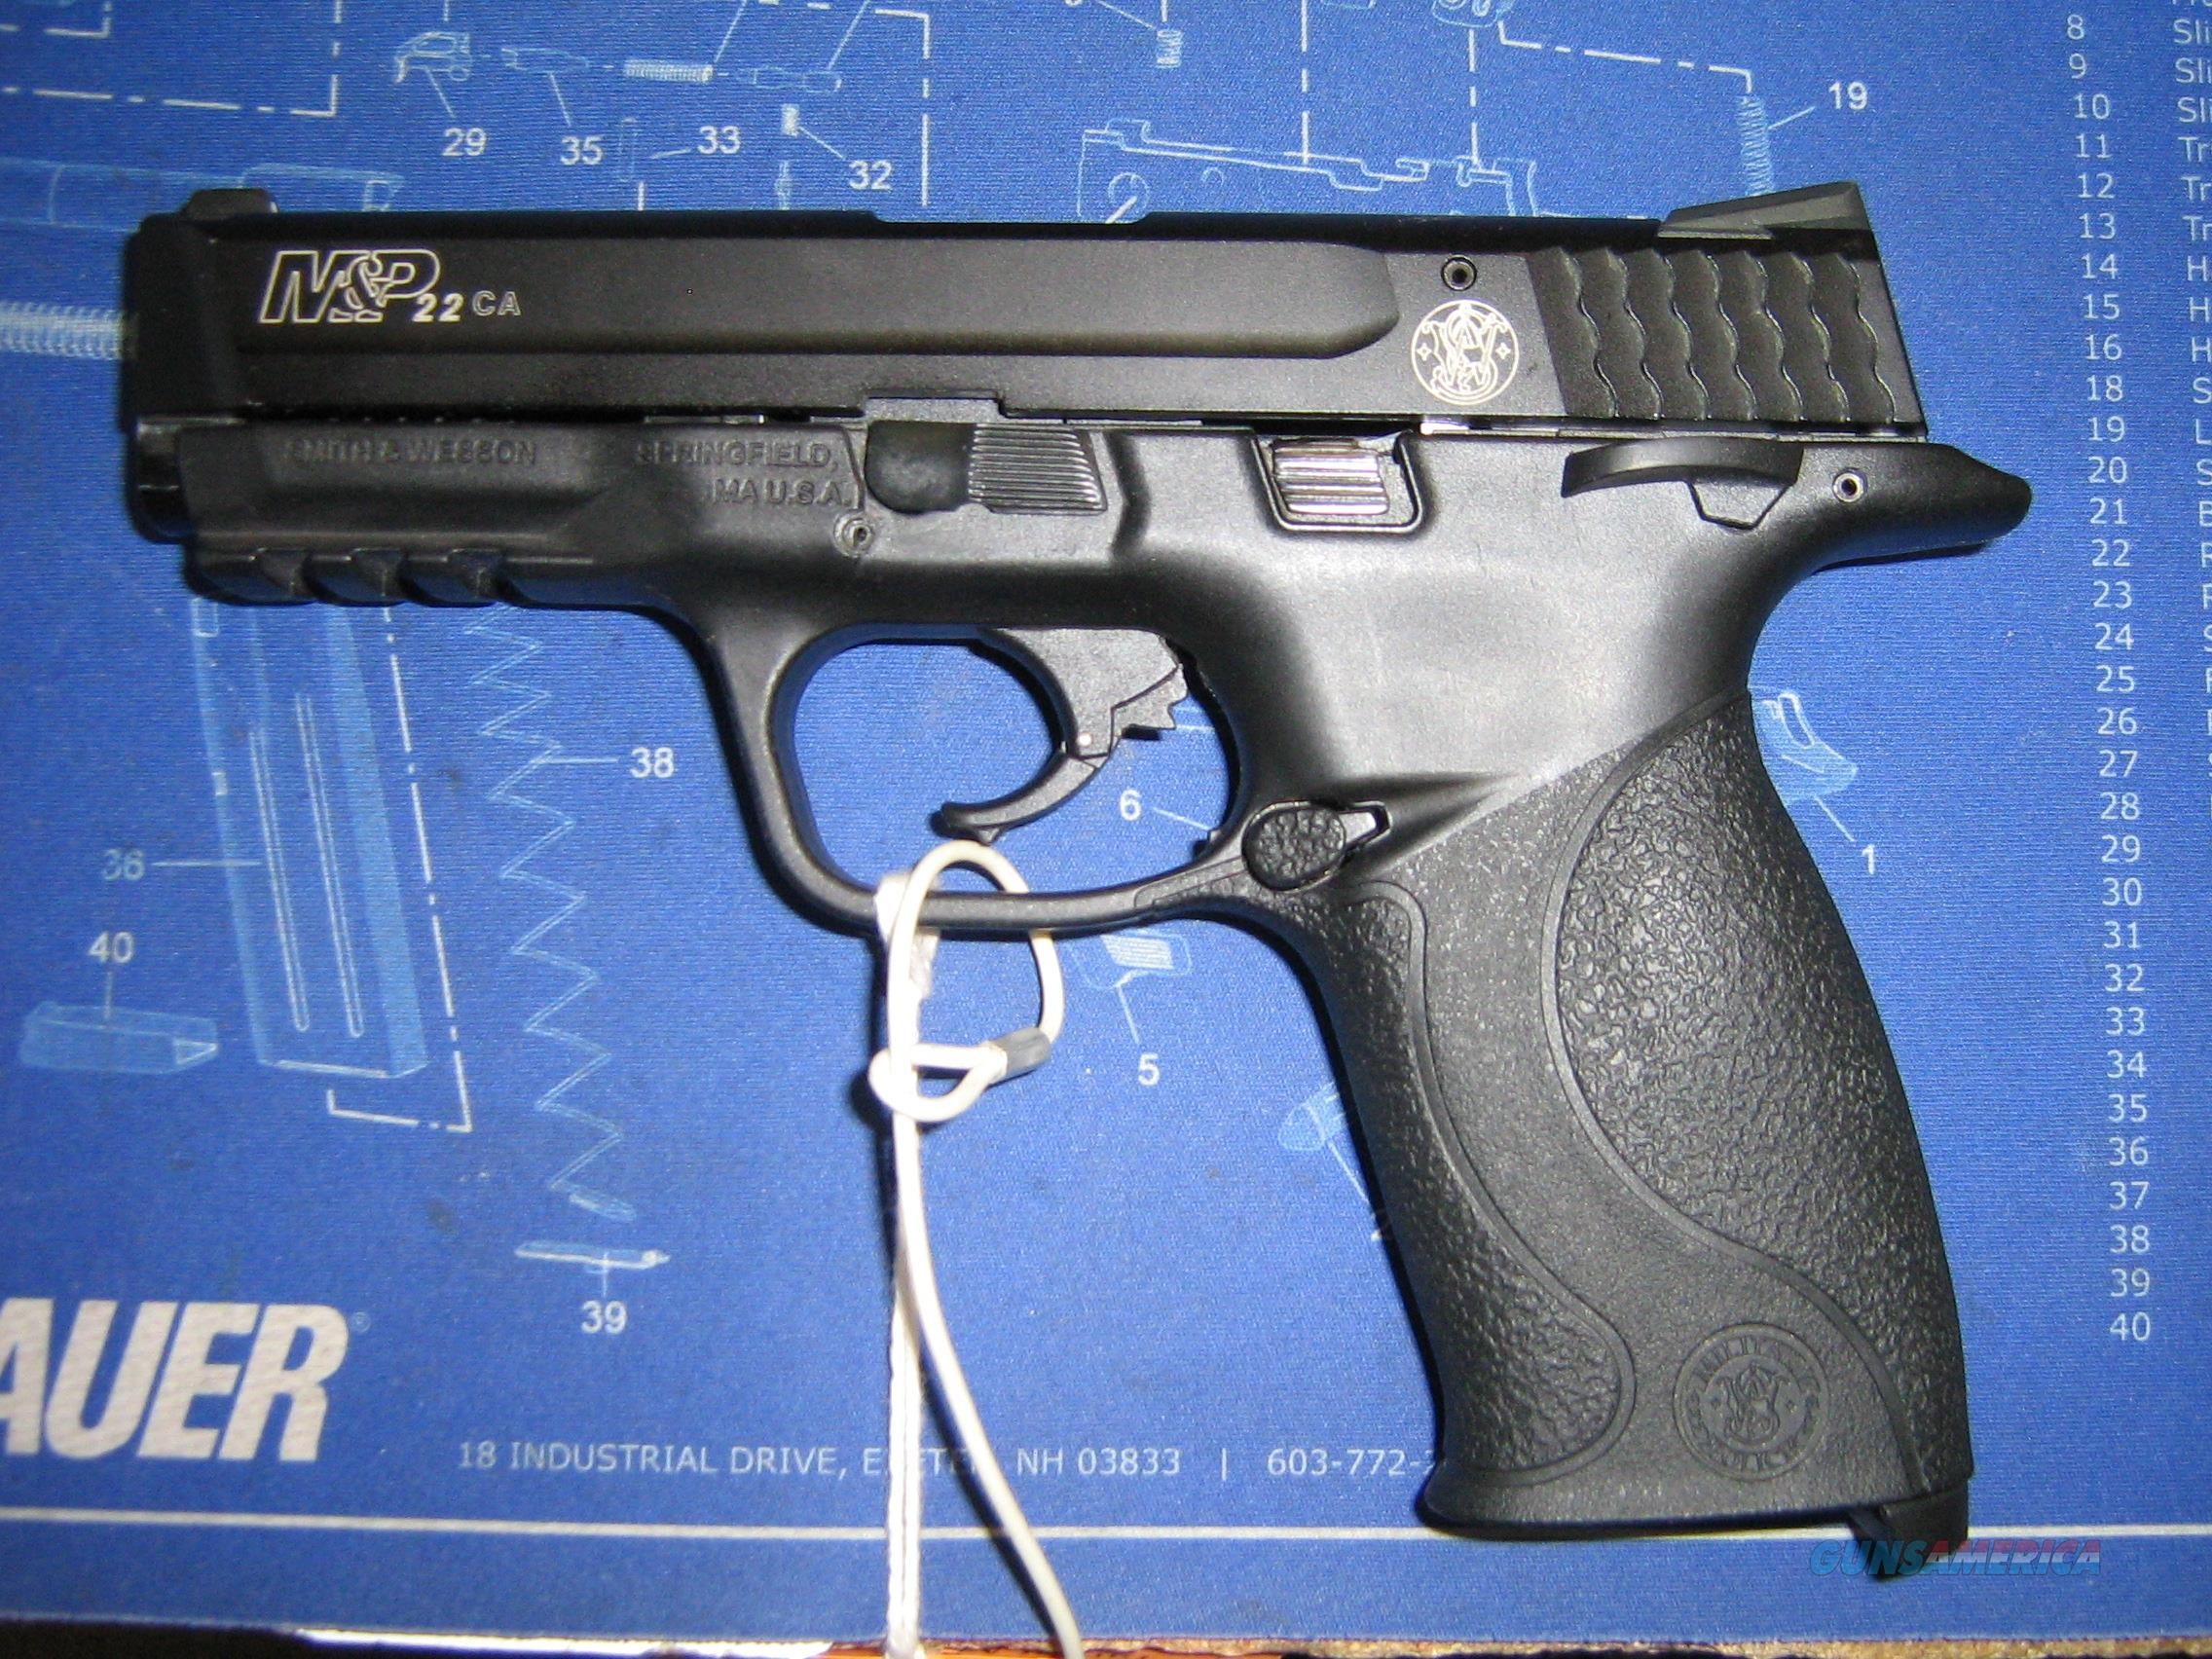 SMITH & WESSON M&P 22CA  Guns > Pistols > Smith & Wesson Pistols - Autos > .22 Autos